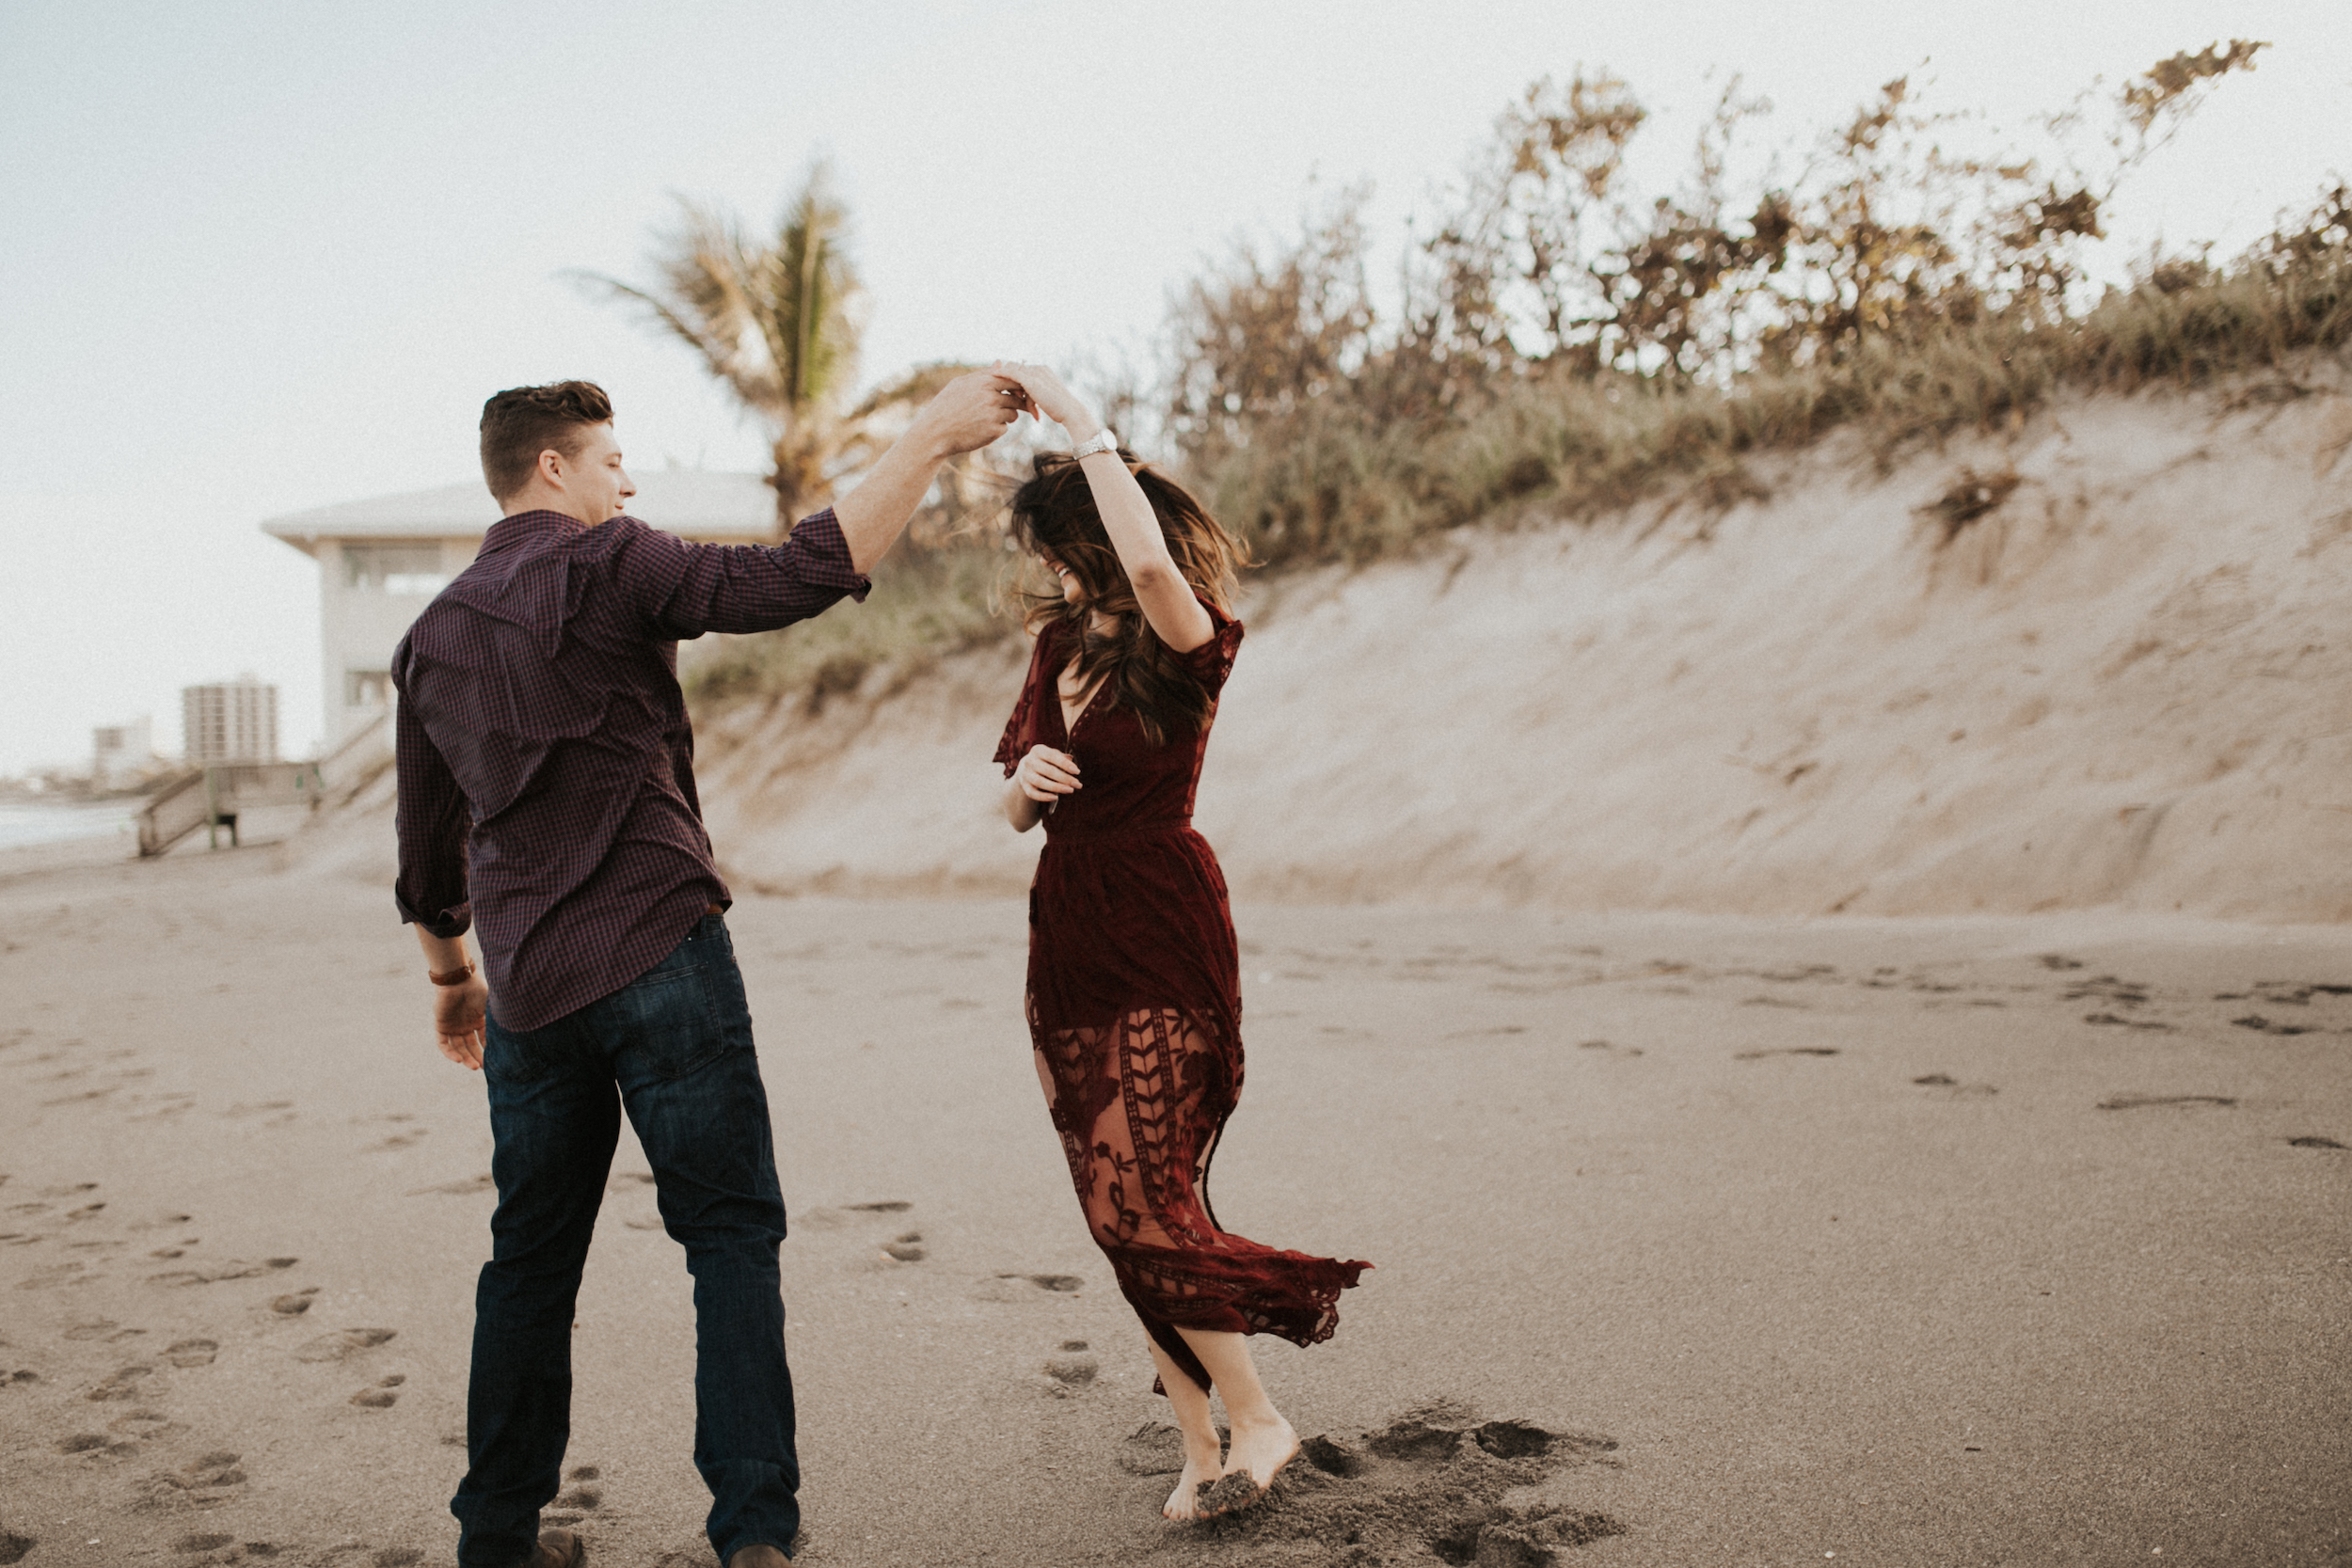 dancing on the florida beach in a red dress.jpg